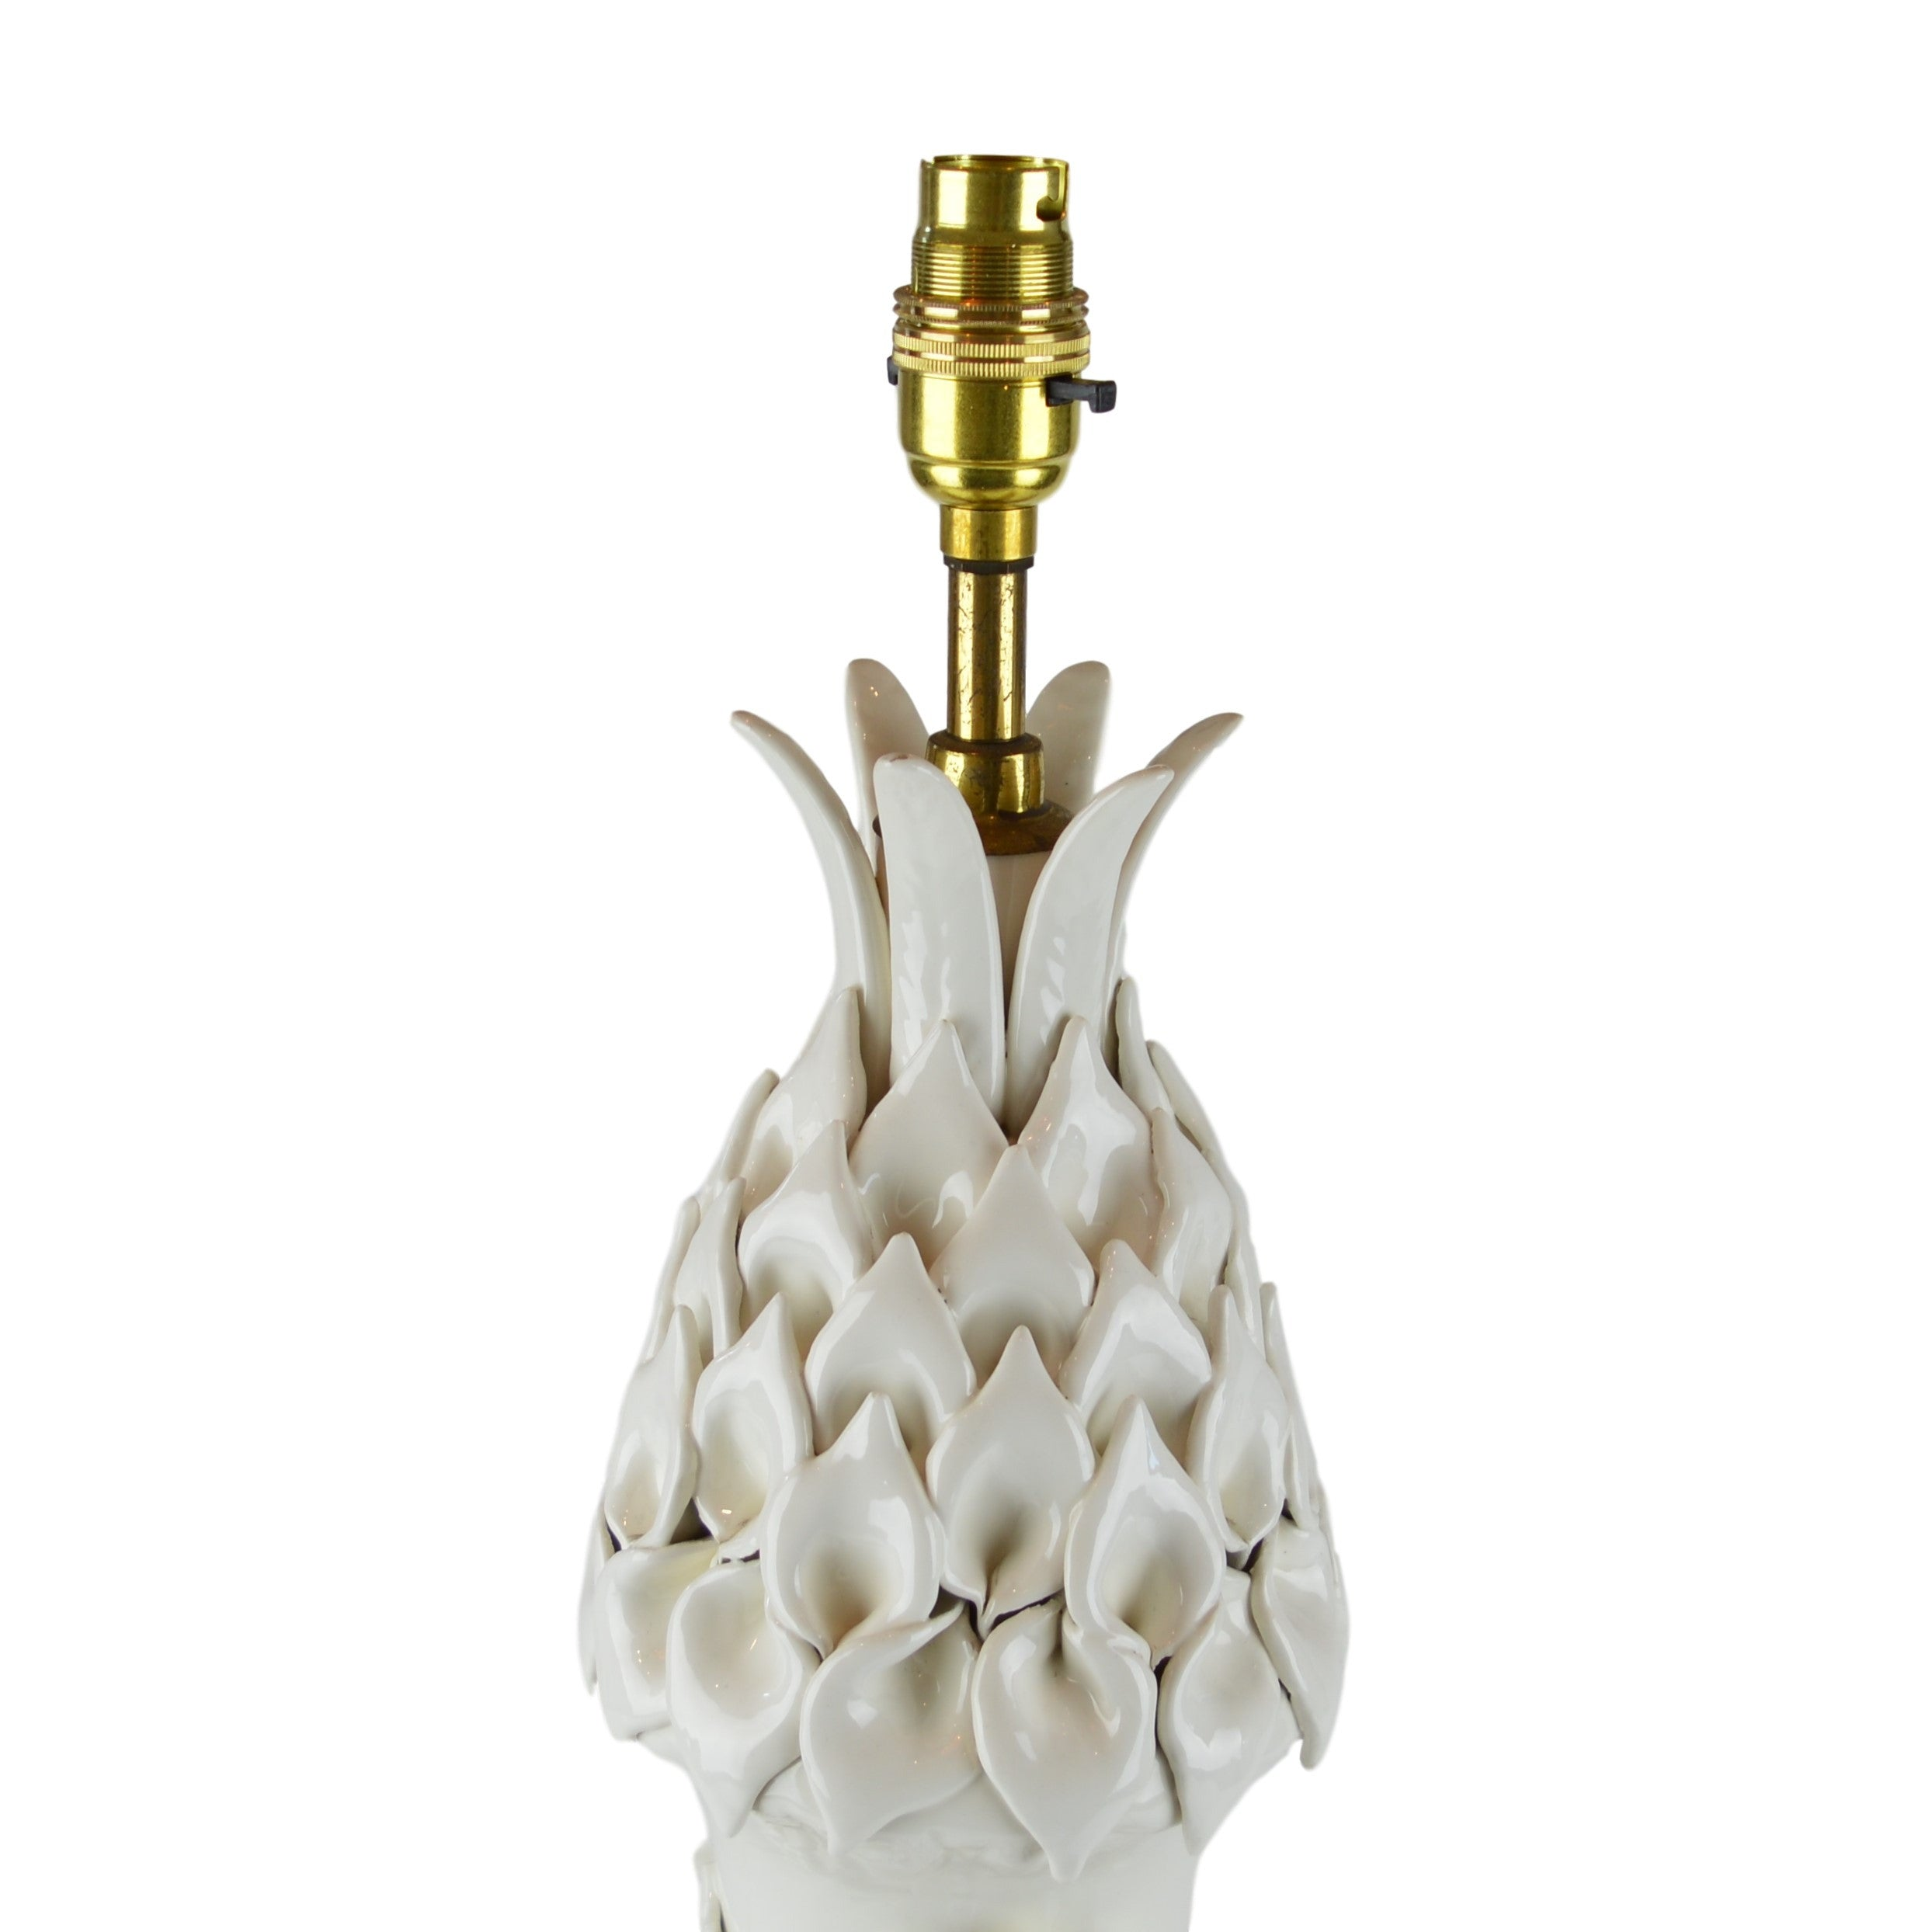 Munro and Kerr Casa Pupo large white lamp with daisy and leaf ceramic details on a gilt base